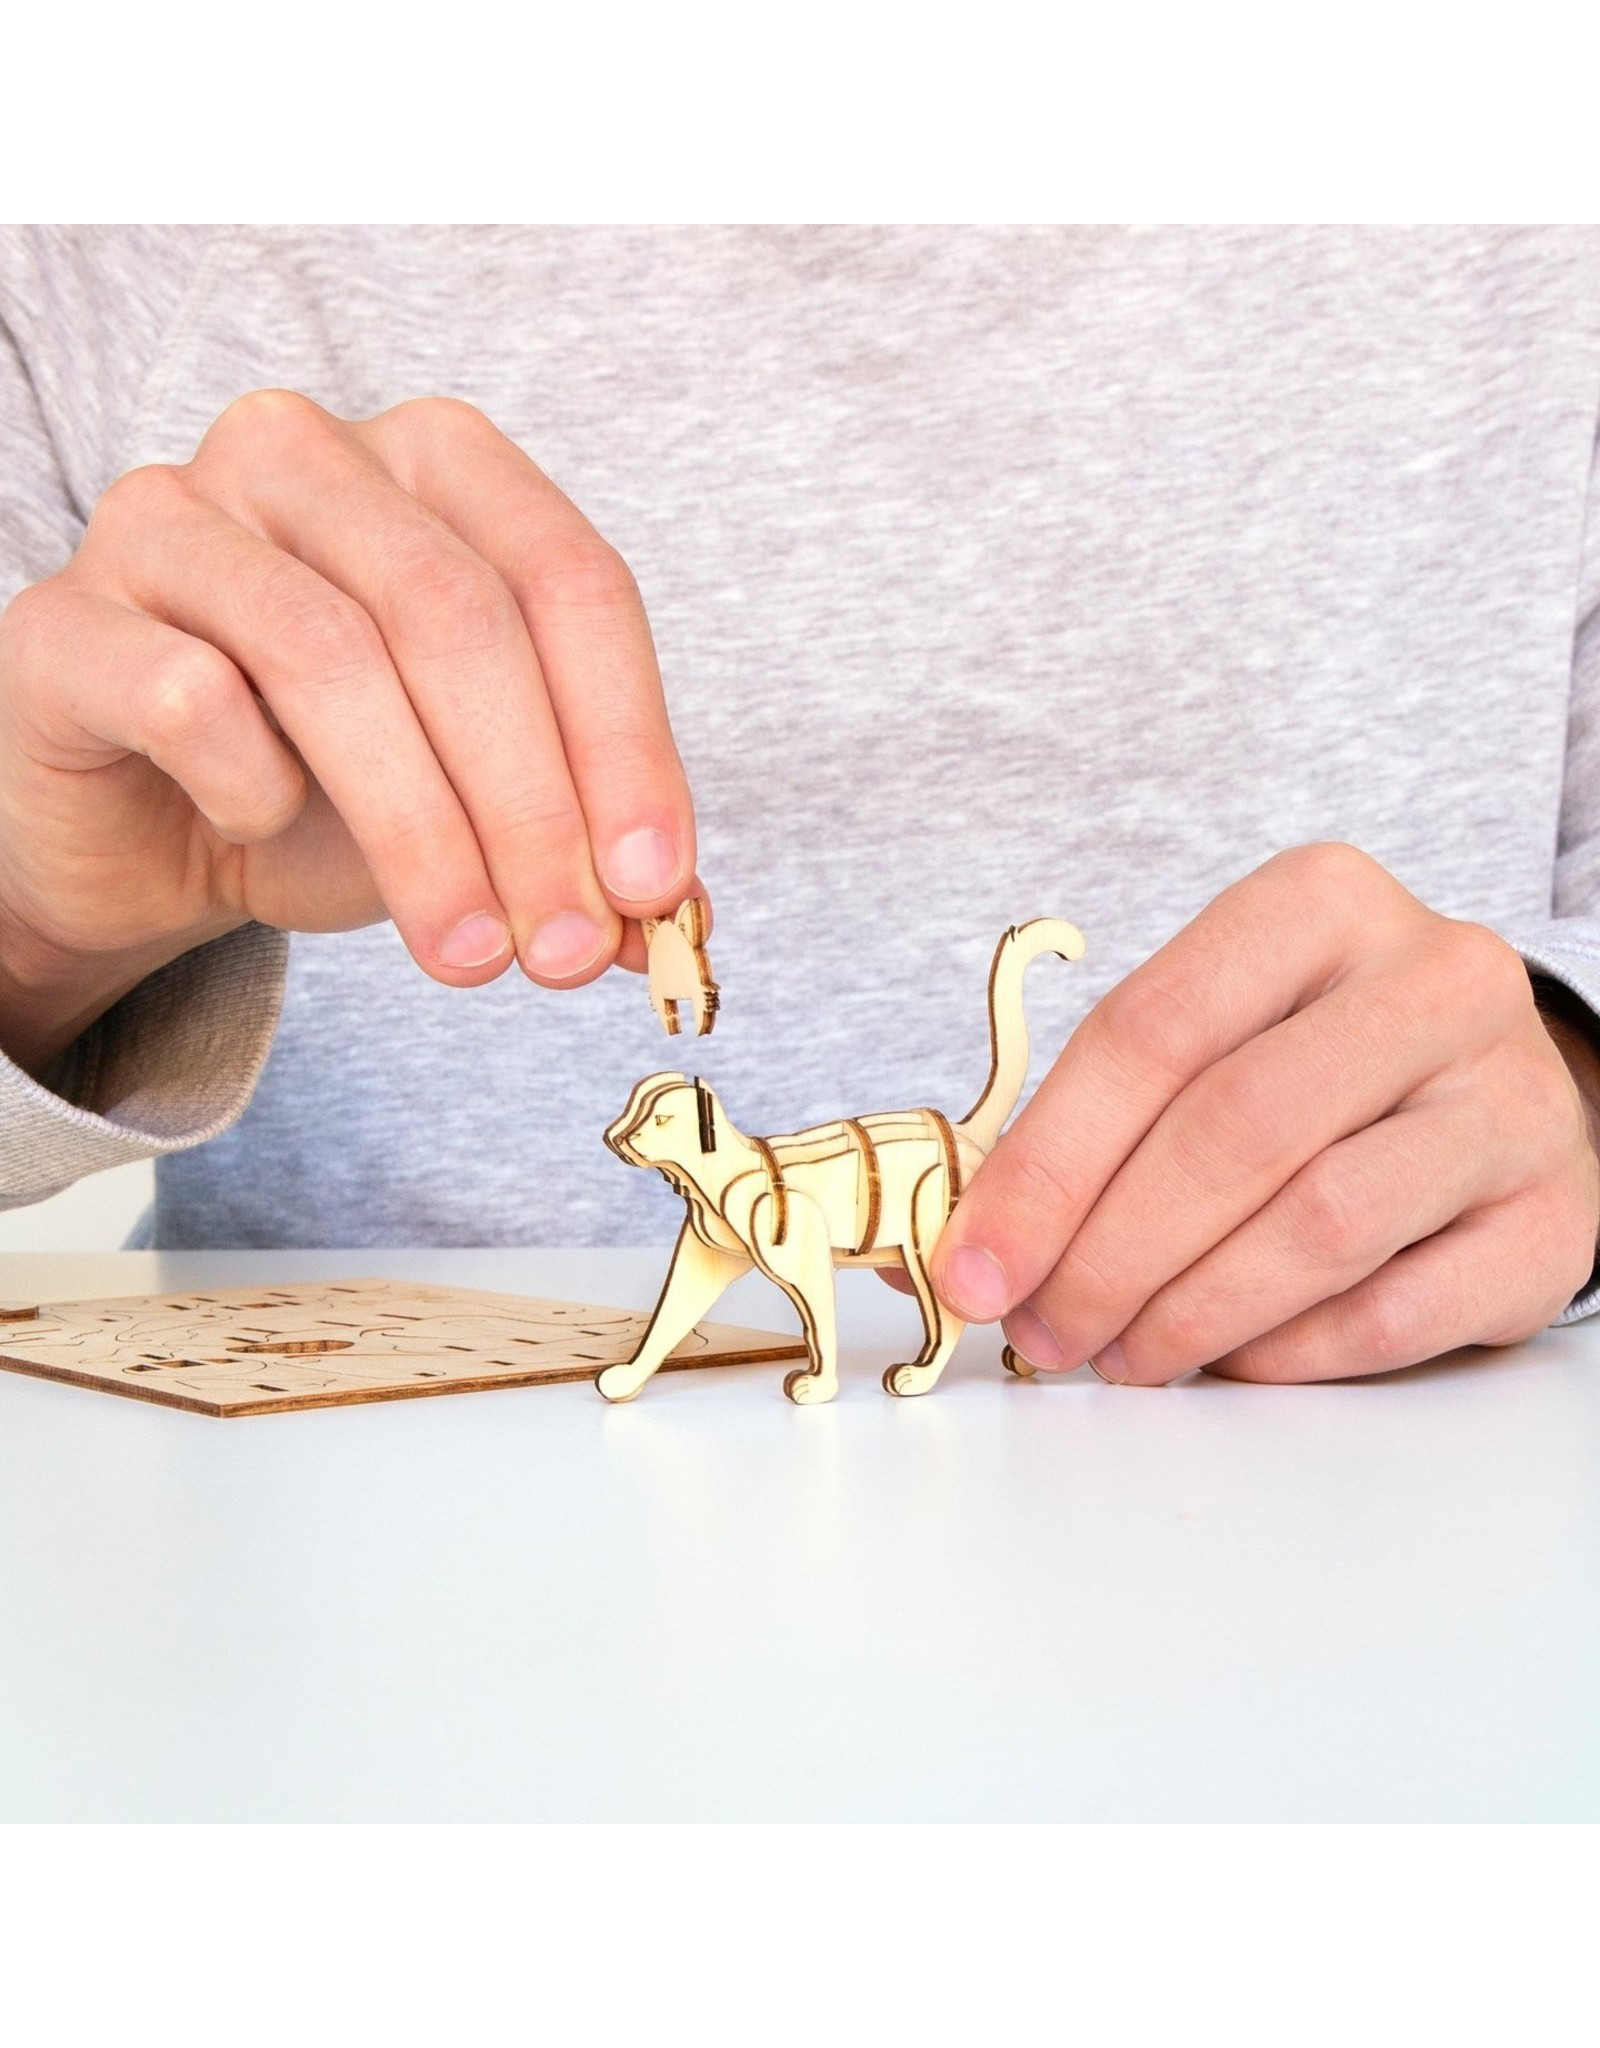 Kikkerland 3D wooden puzzle of a cat